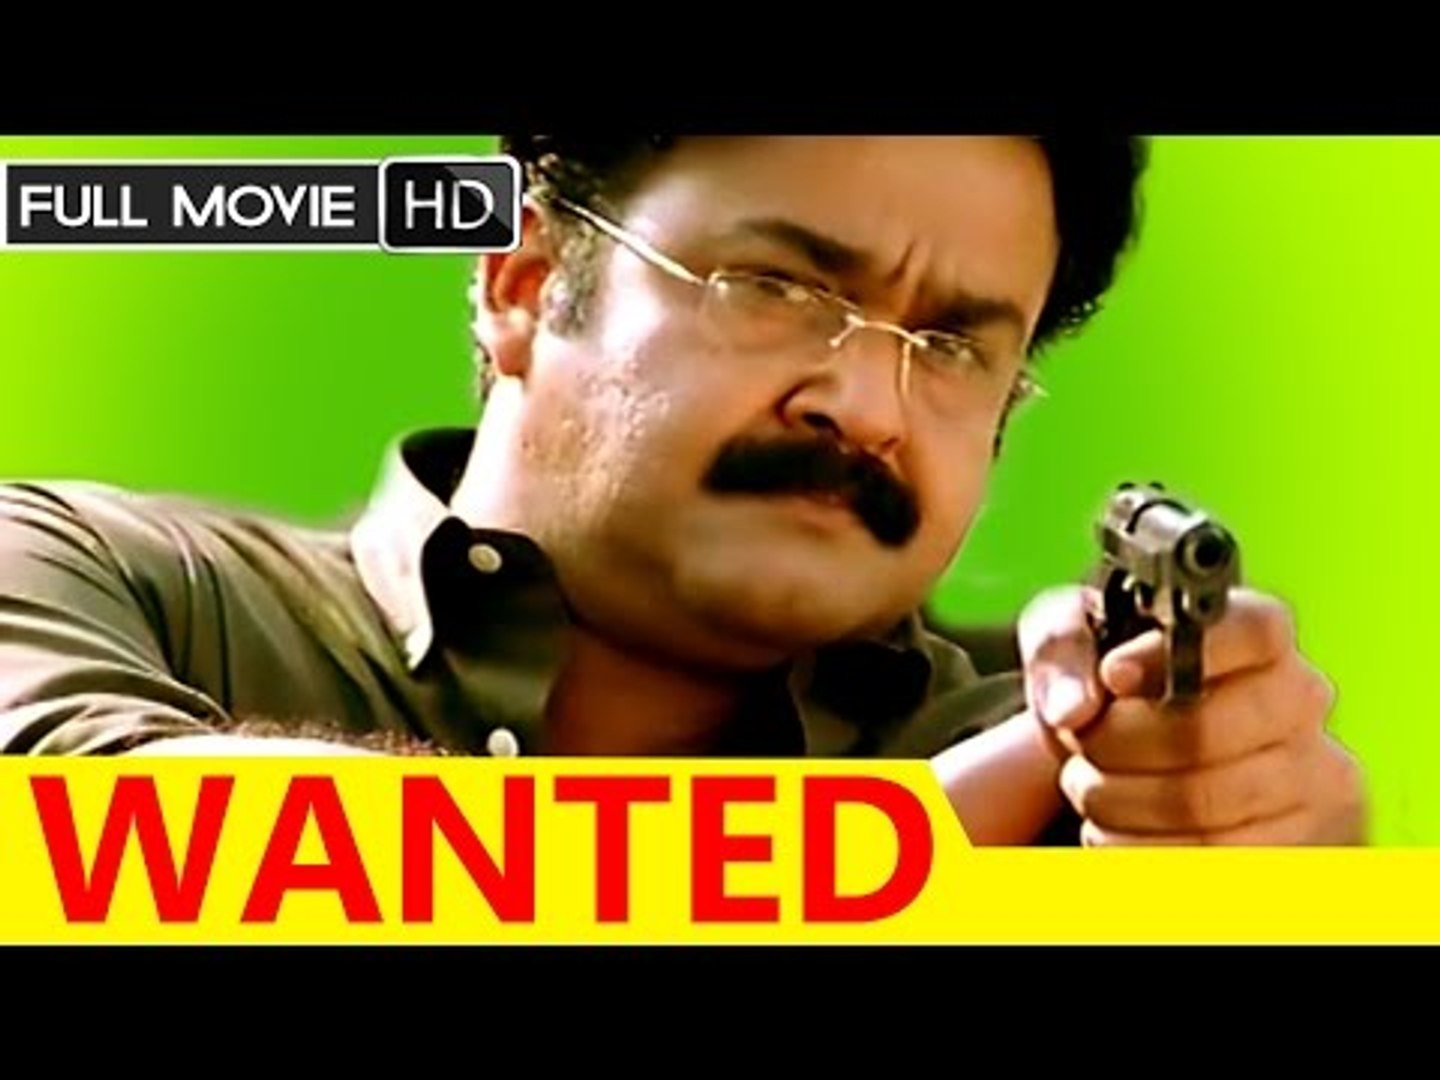 Malayalam Full Movie Wanted Full Hd Movie Ft Mohanlal Aravind